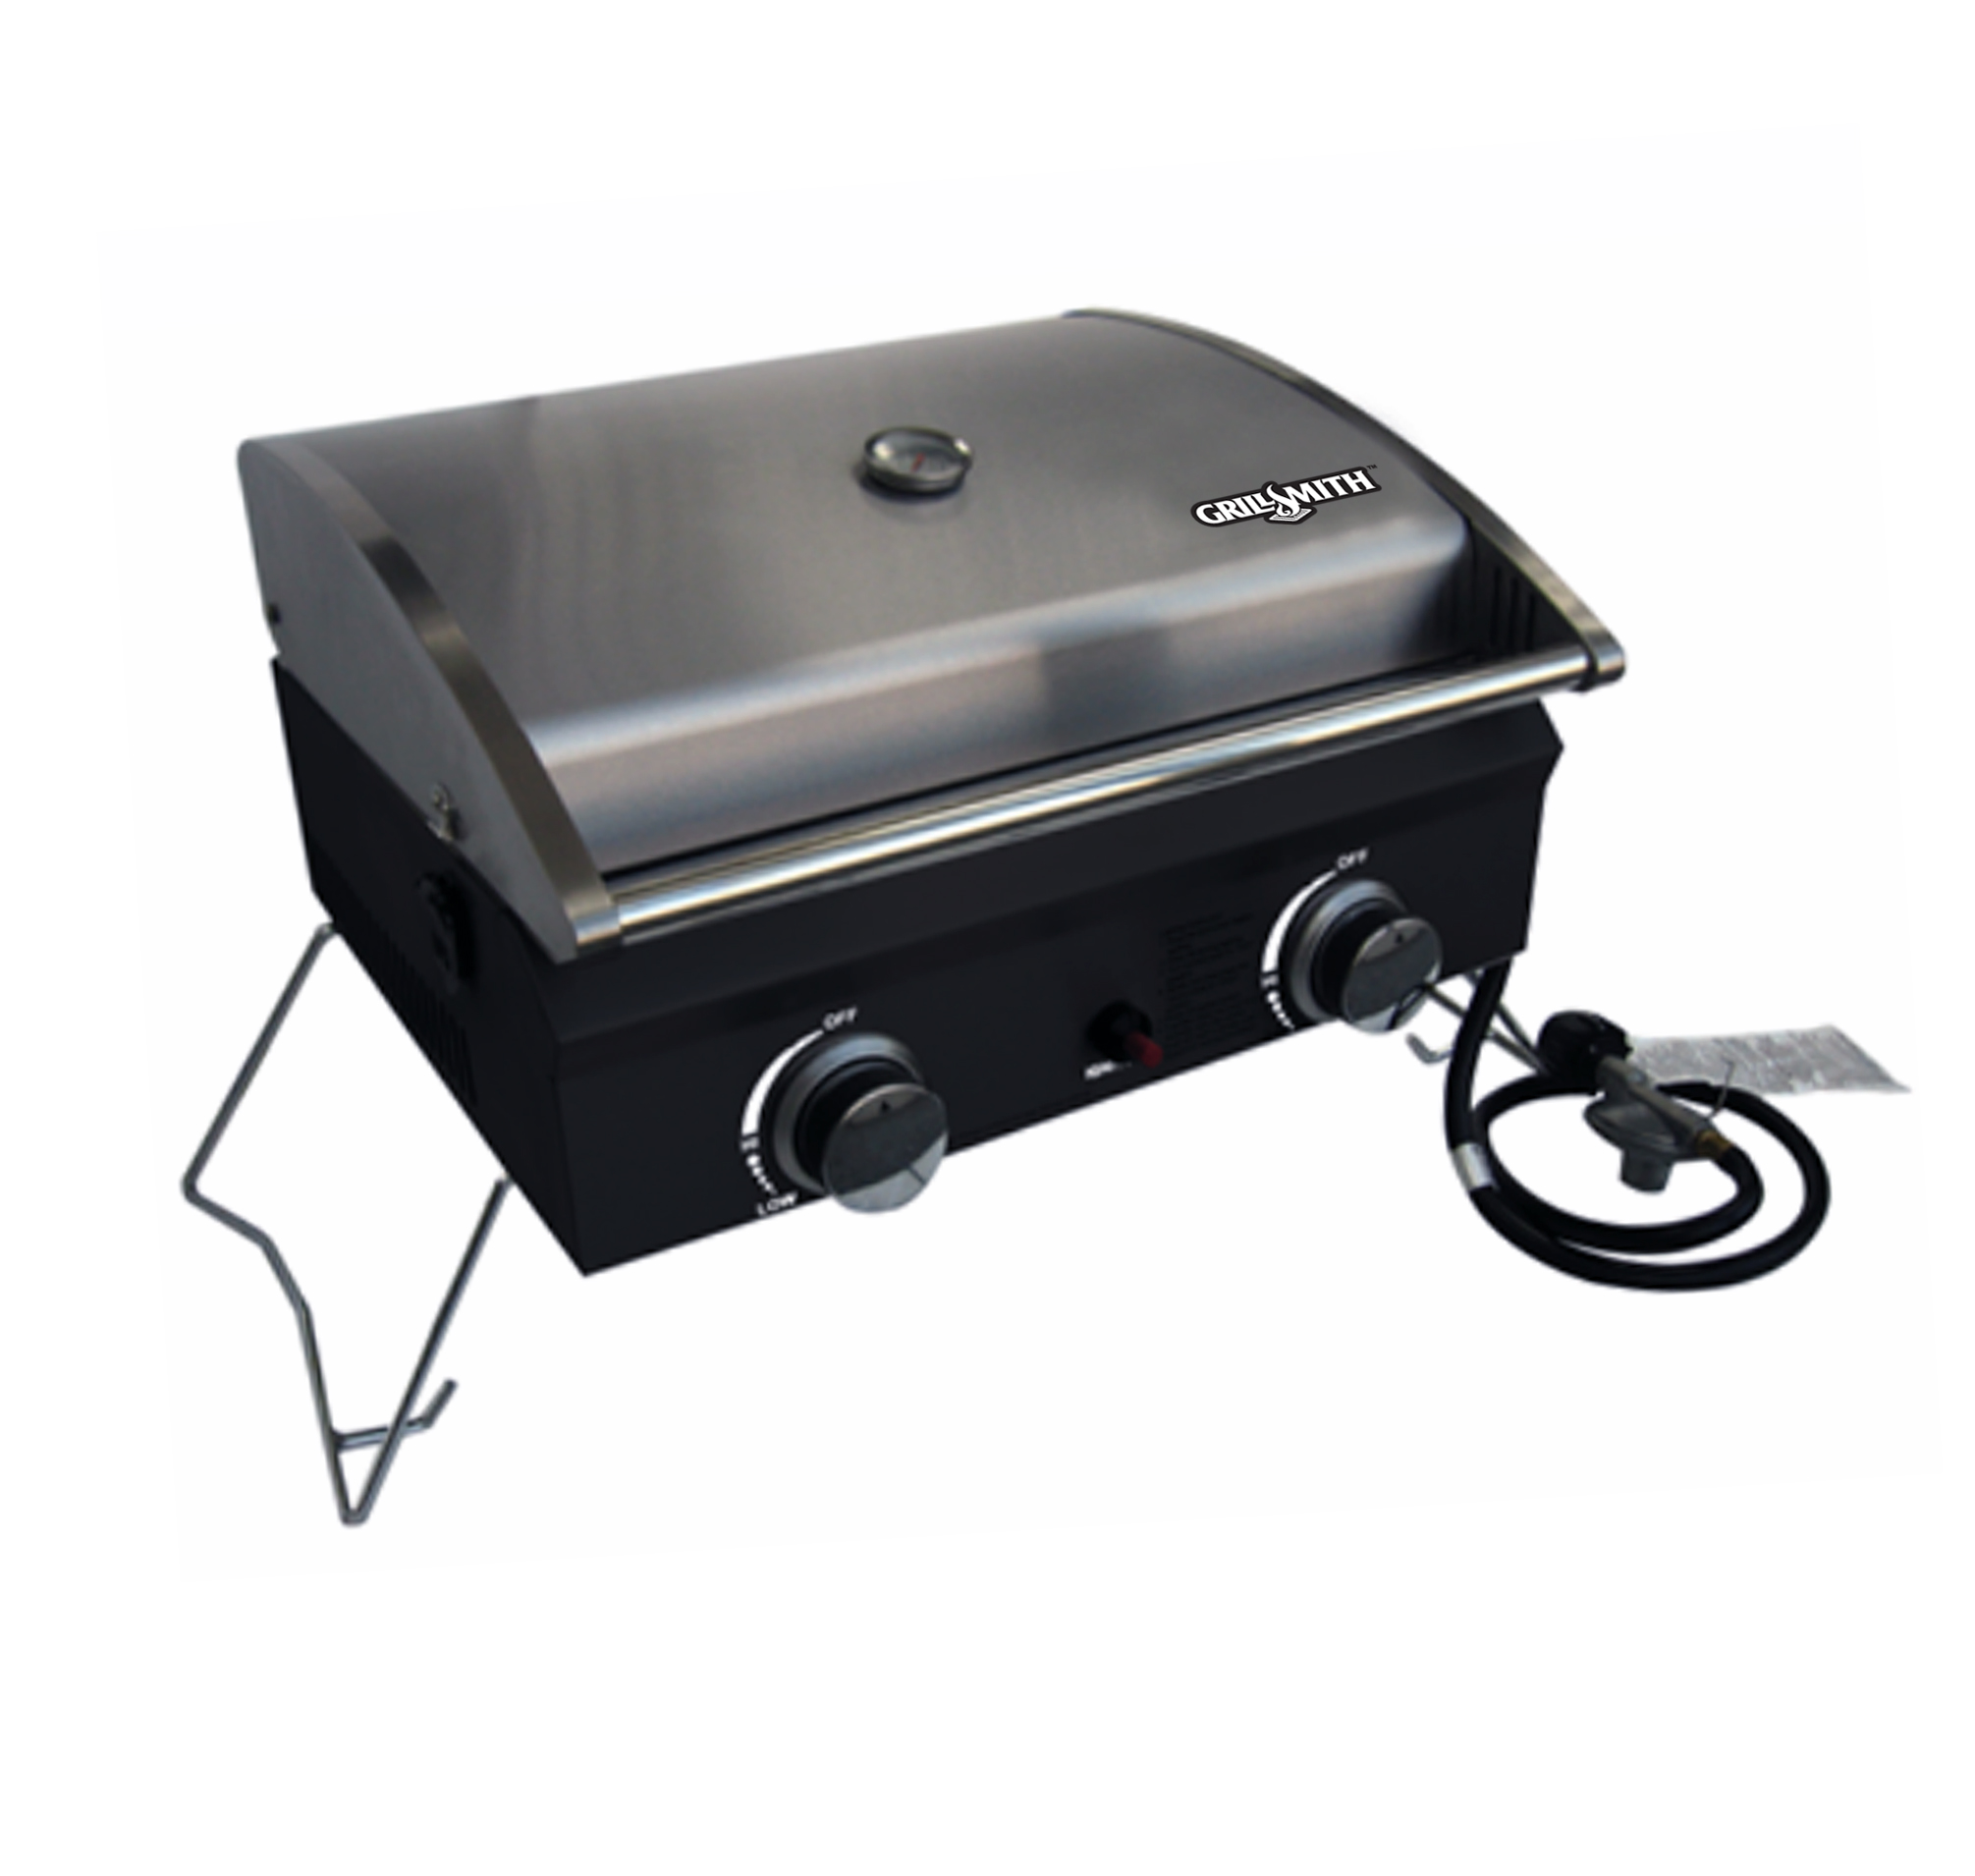 2 Burner Portable Stainless Steel Black Gas Grill